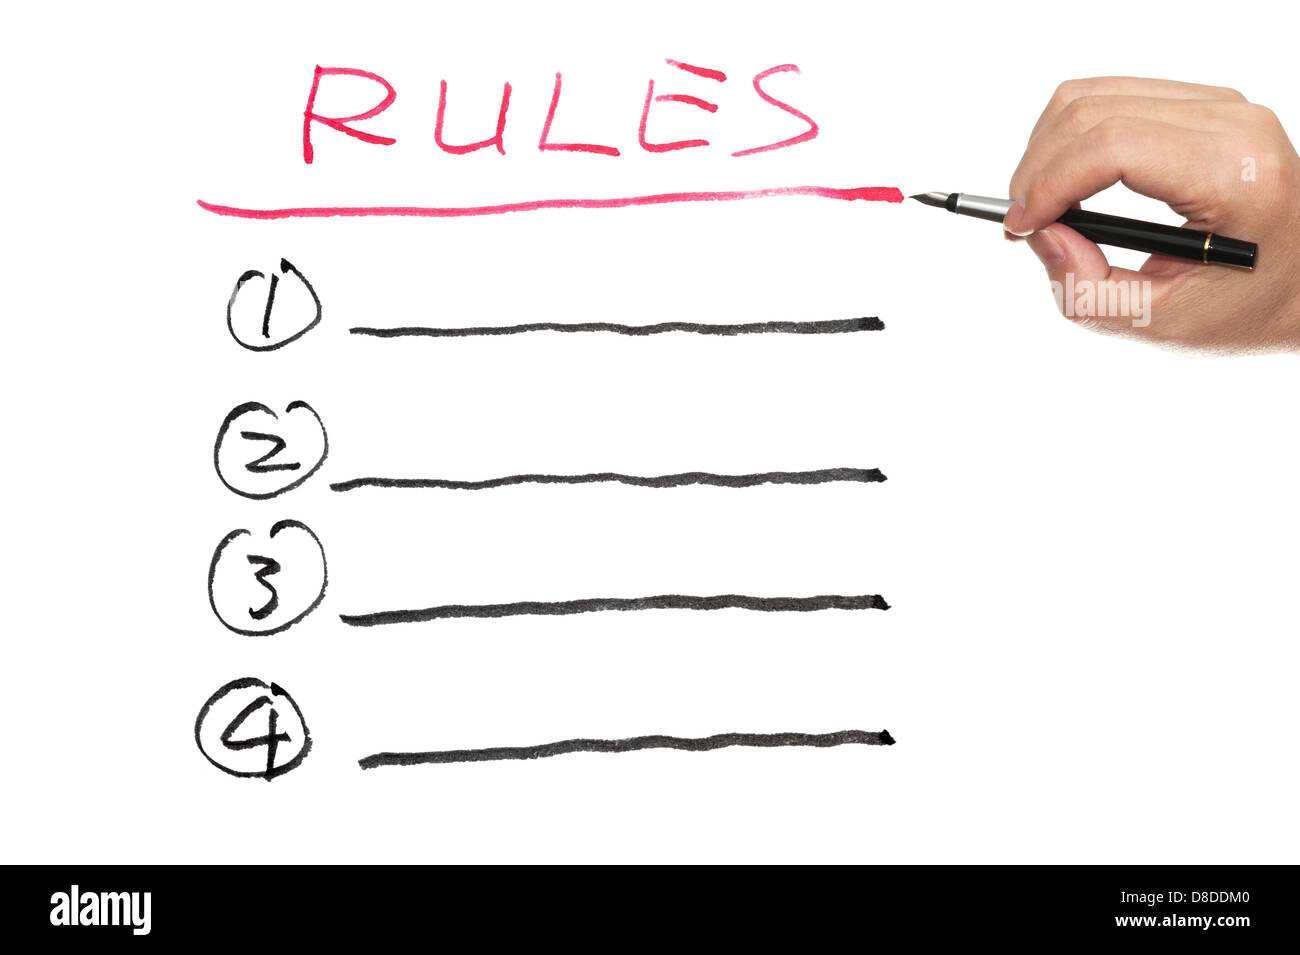 Rules list written on white paper - Stock Image